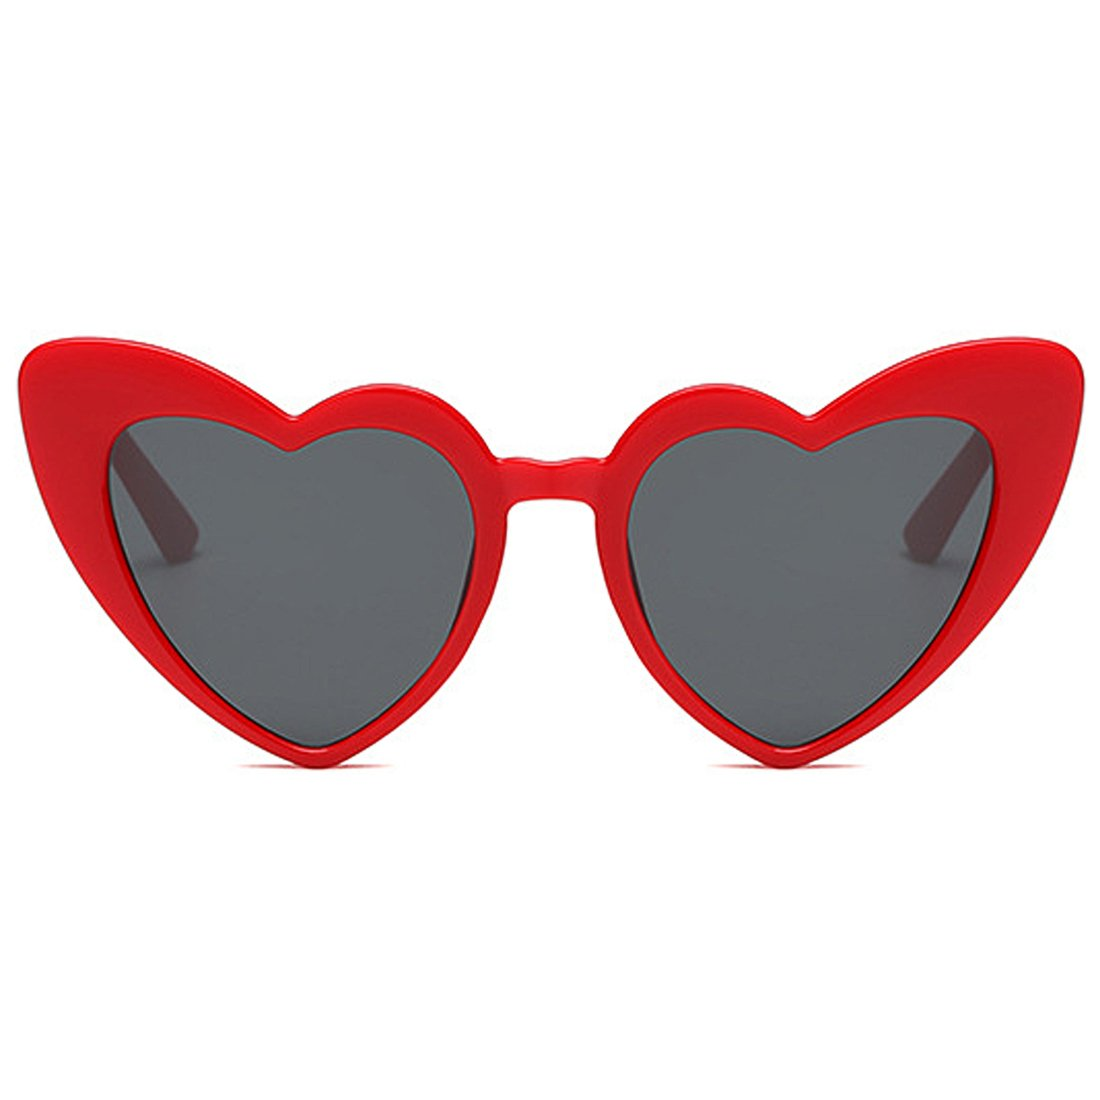 Modesoda fashion for women. Clipart sunglasses heart shaped sunglasses